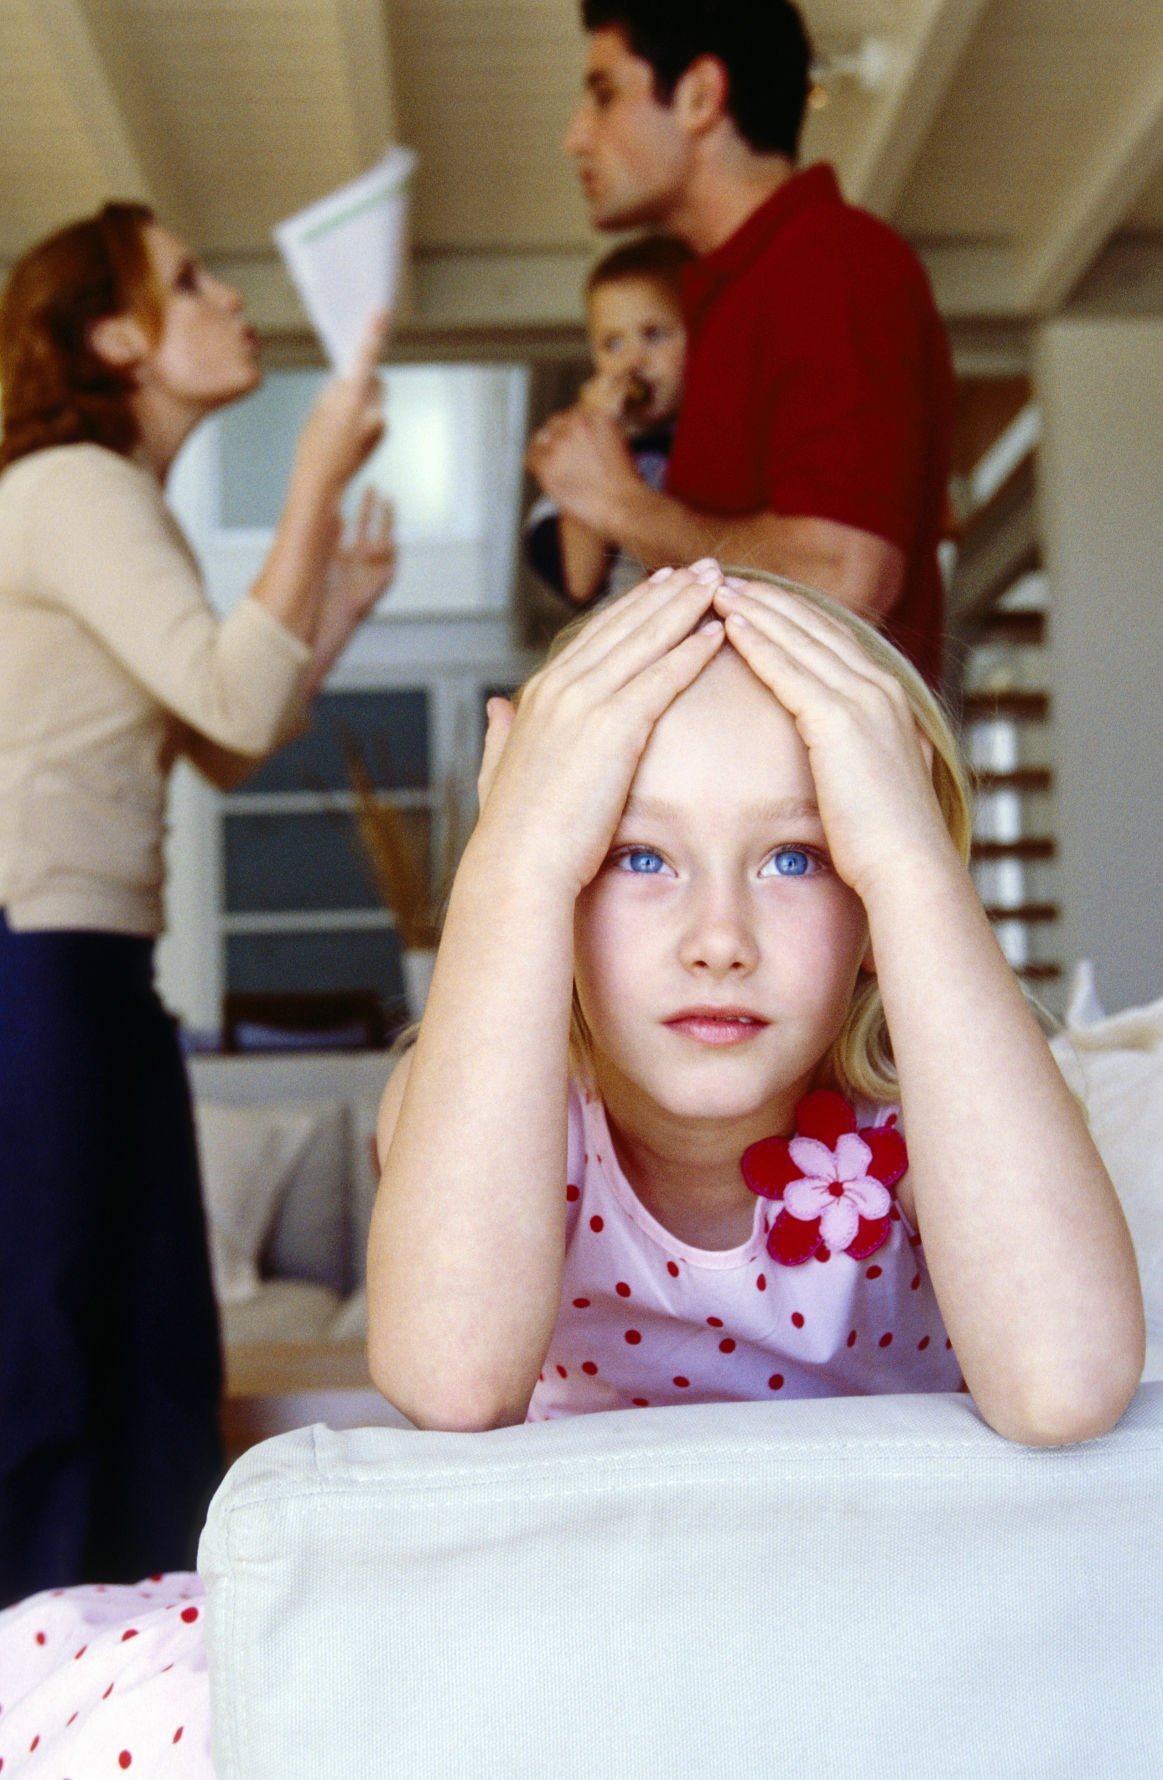 Family: Stress in families varies, but there are ways to cope